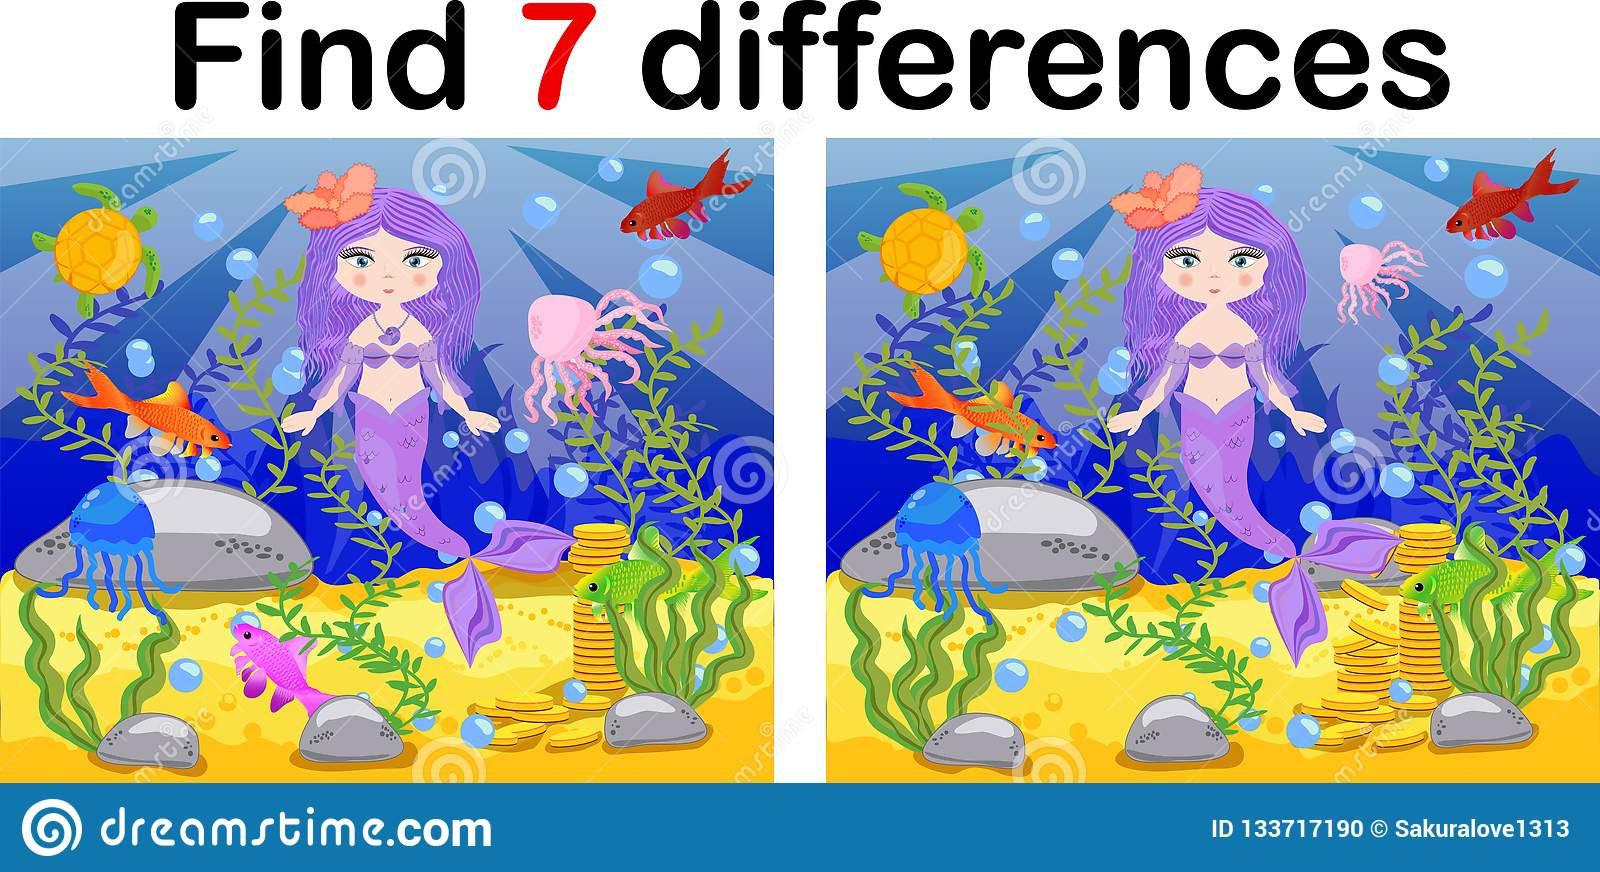 Find Differences Game For Children Mermaid Underwater In Cartoon Style Education Game For